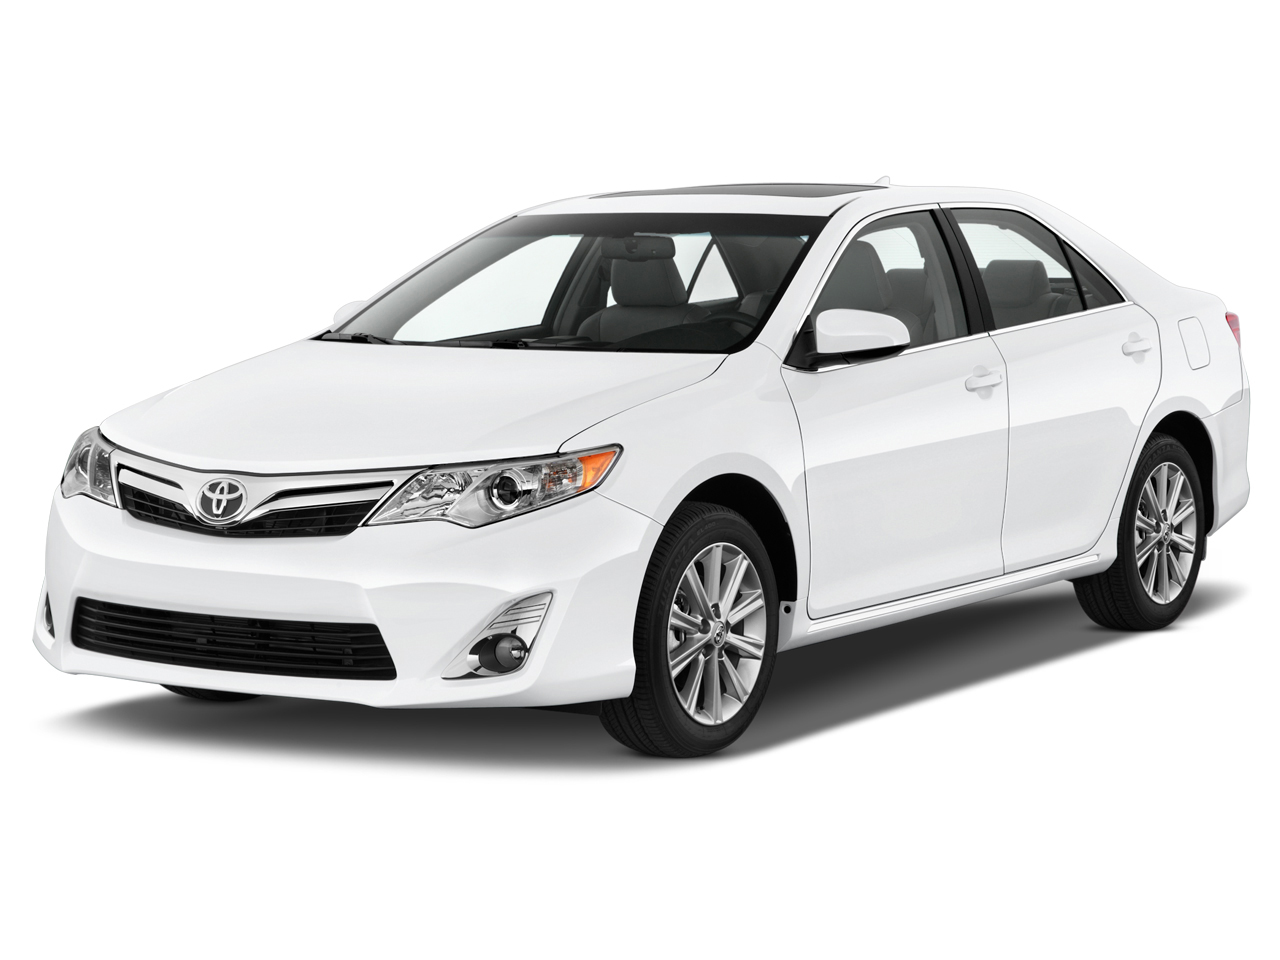 2014 Toyota Camry Png